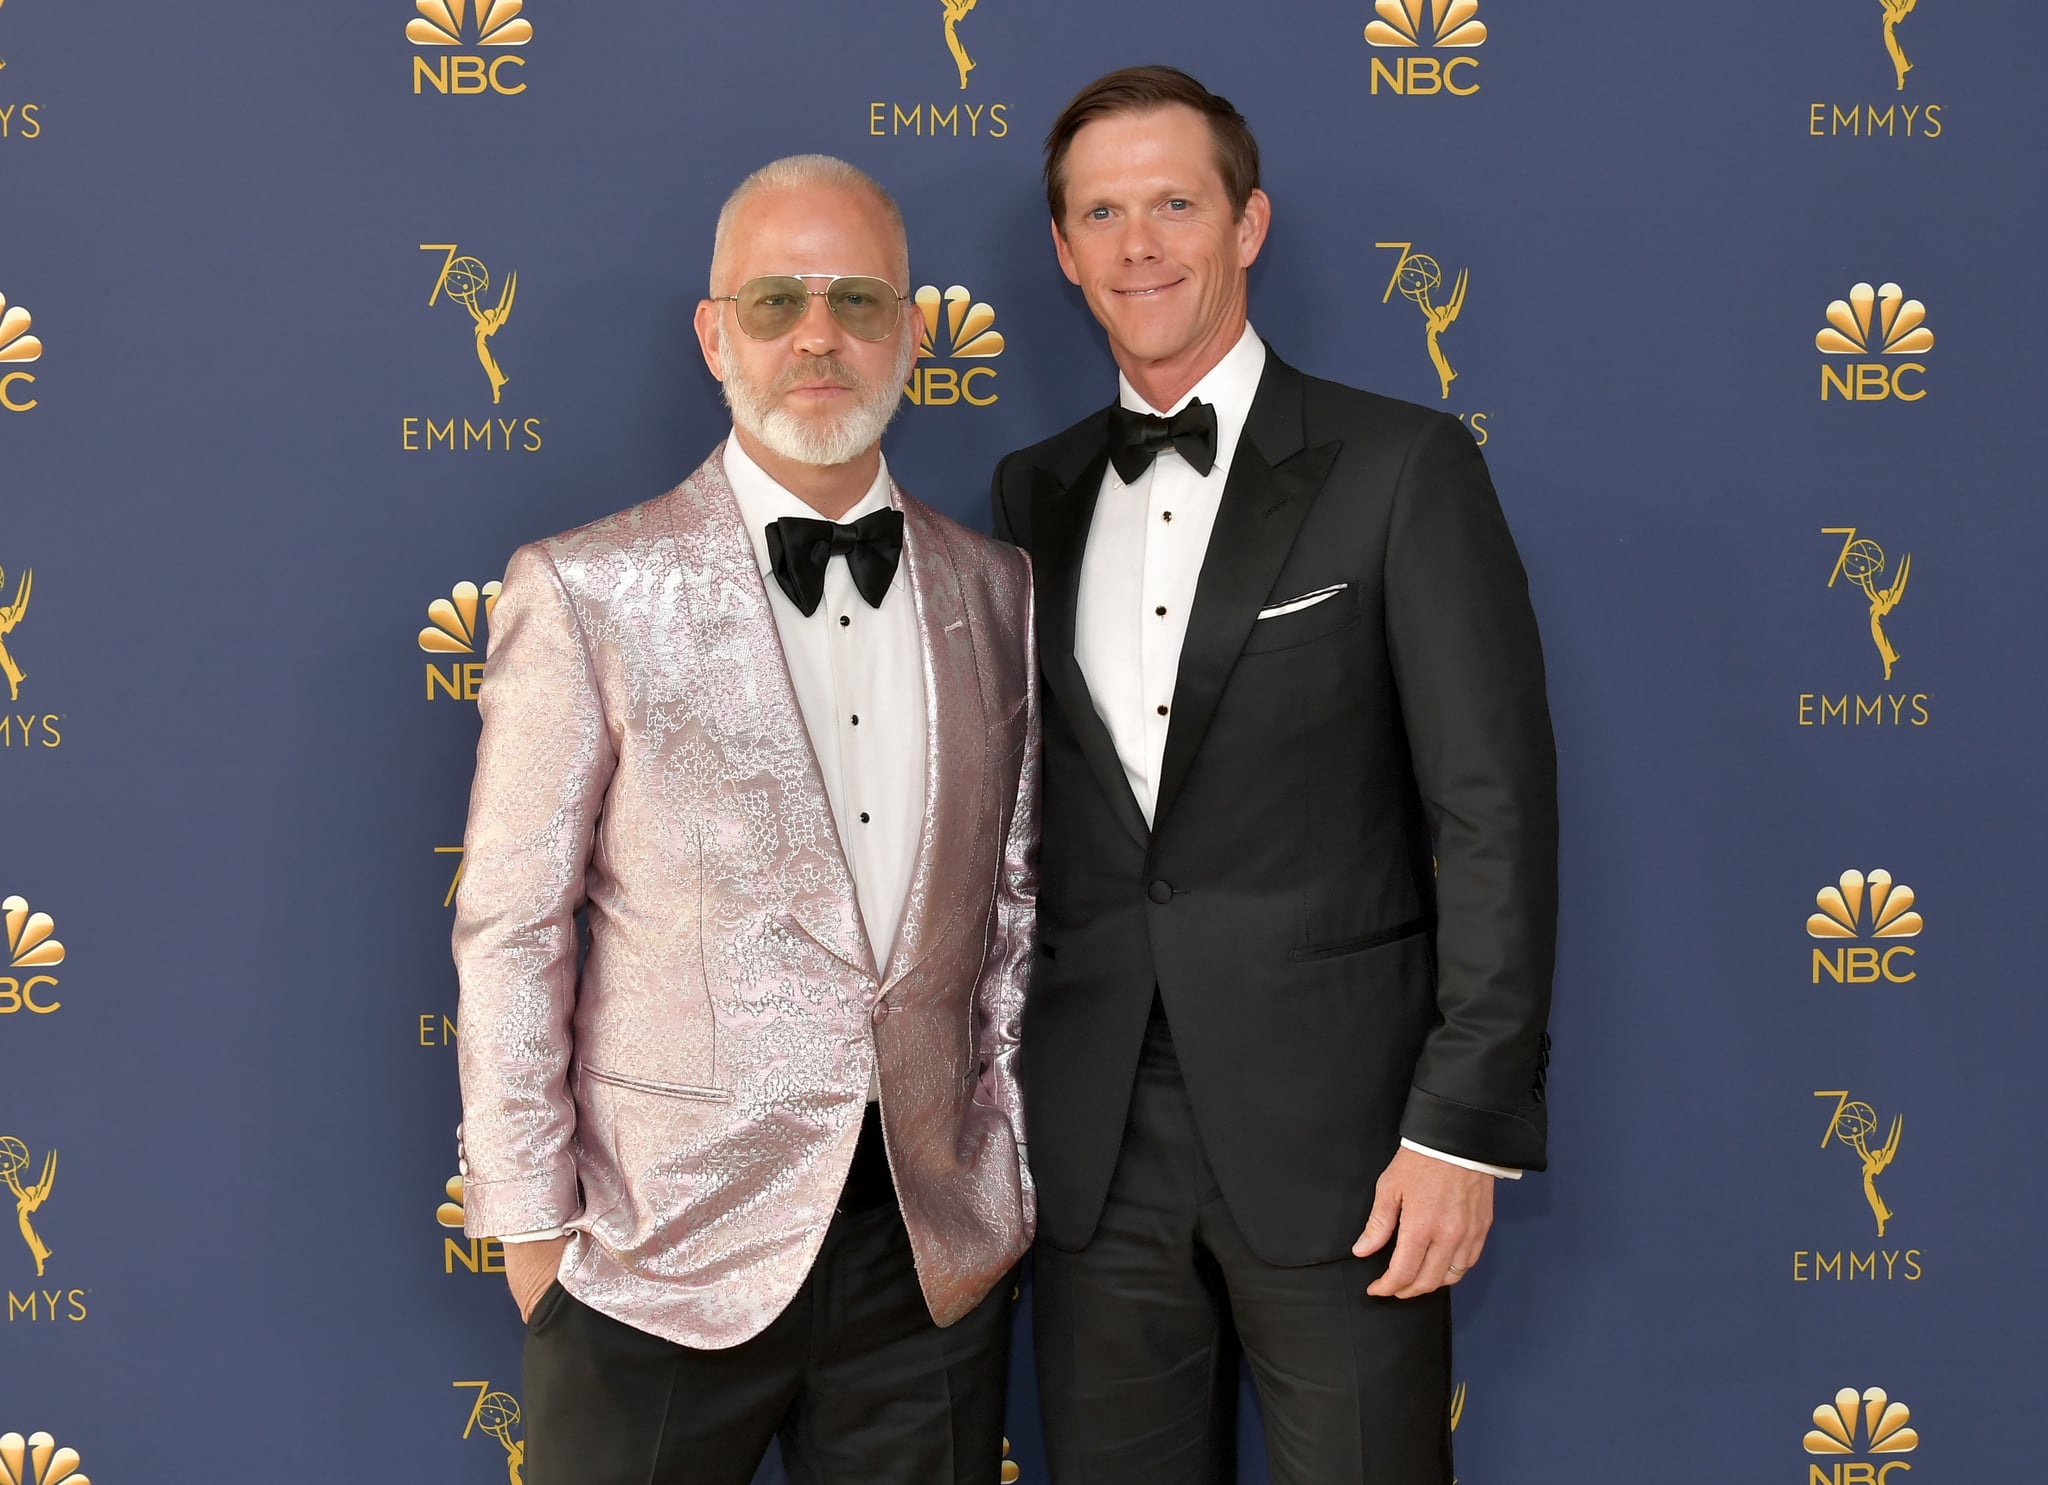 LOS ANGELES, CA - SEPTEMBER 17:  Ryan Murphy (L) and David Miller attend the 70th Emmy Awards at Microsoft Theatre on September 17, 2018 in Los Angeles, California.  (Photo by Neilson Barnard/Getty Images)